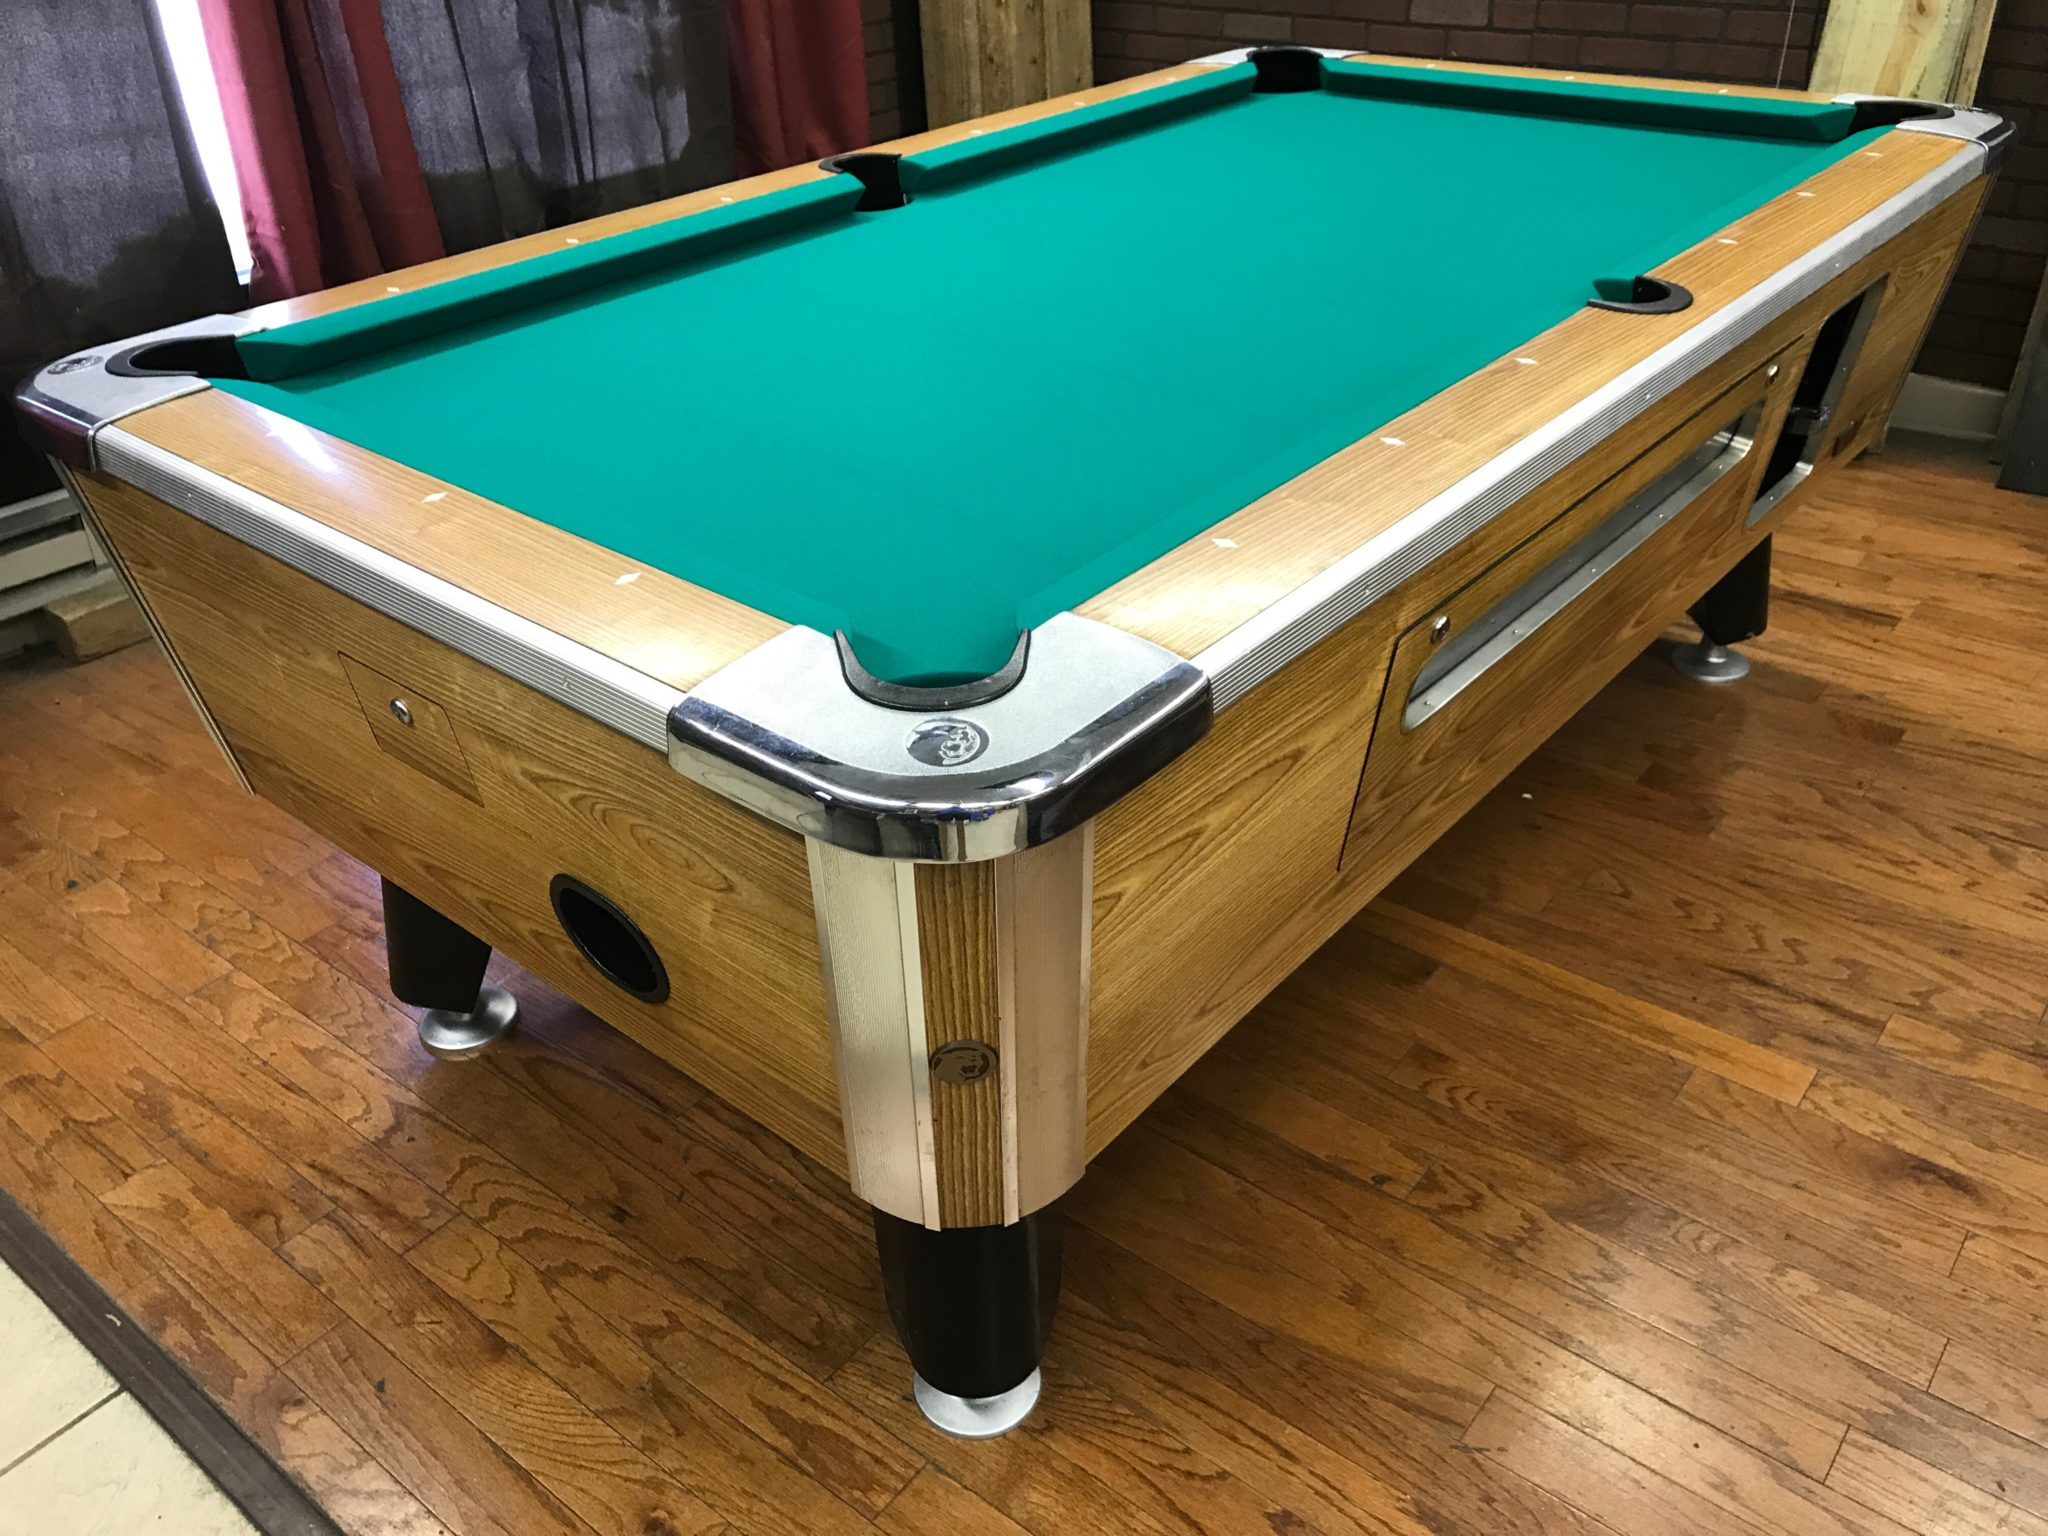 Table 060117 Valley Used Coin Operated Pool Table Used